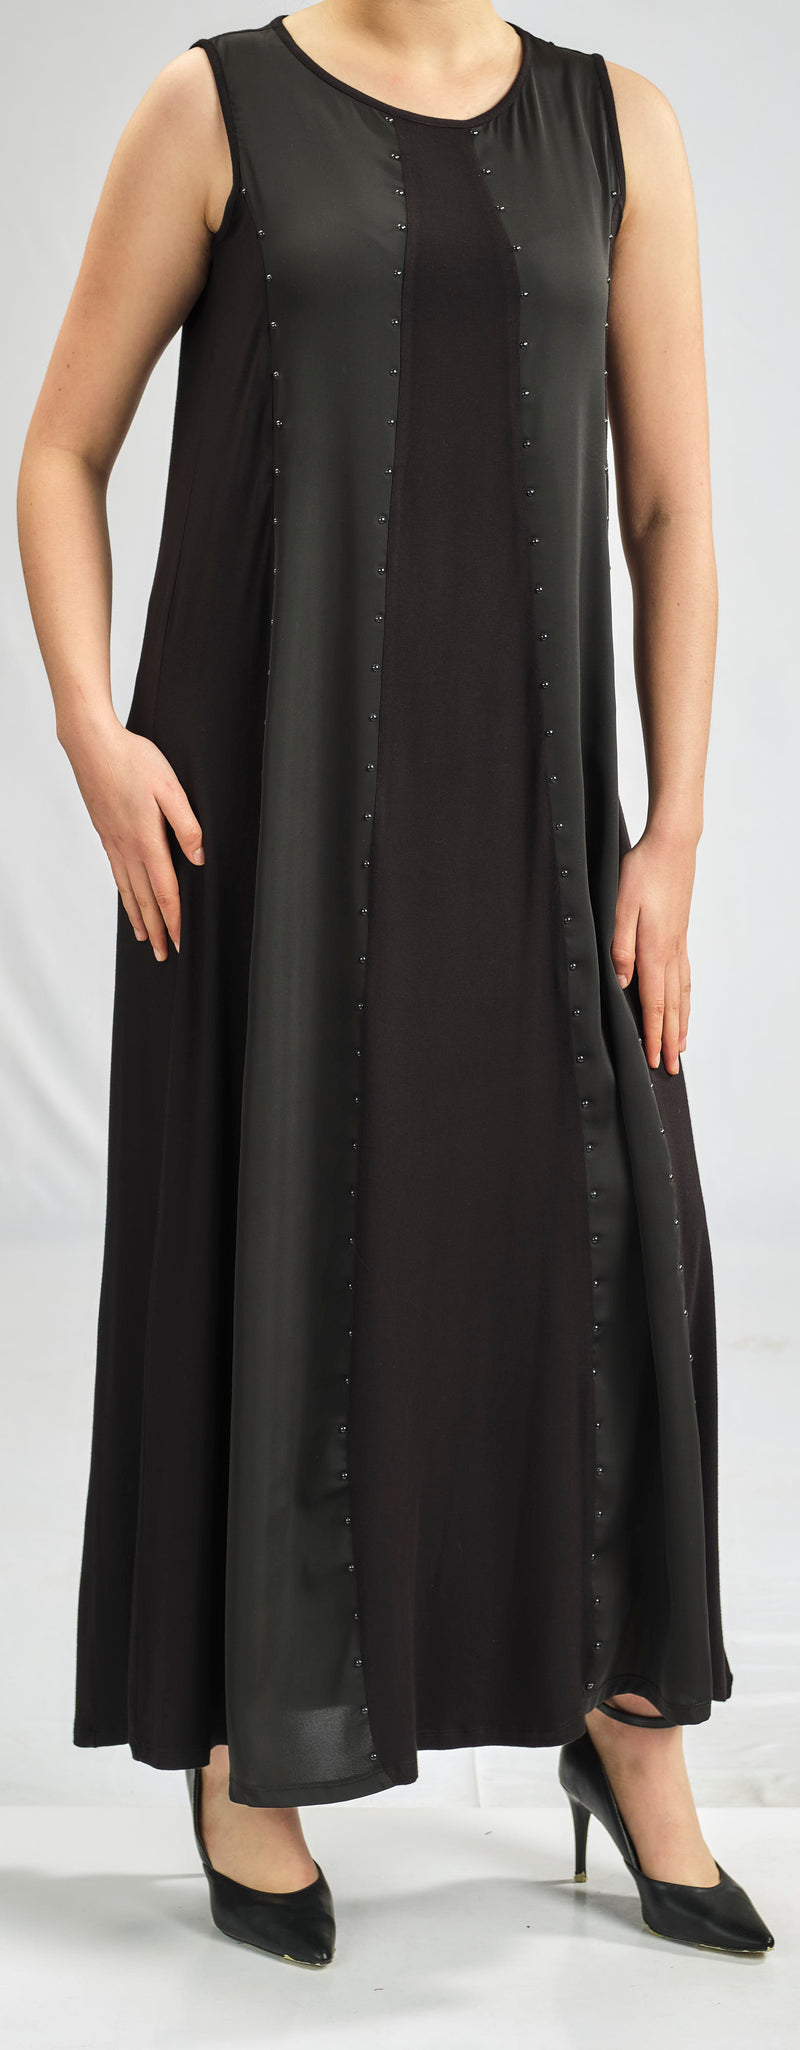 MODAL DRESS WITH A FLOWY LAYER OF SOFT AND SILKY CHIFFON